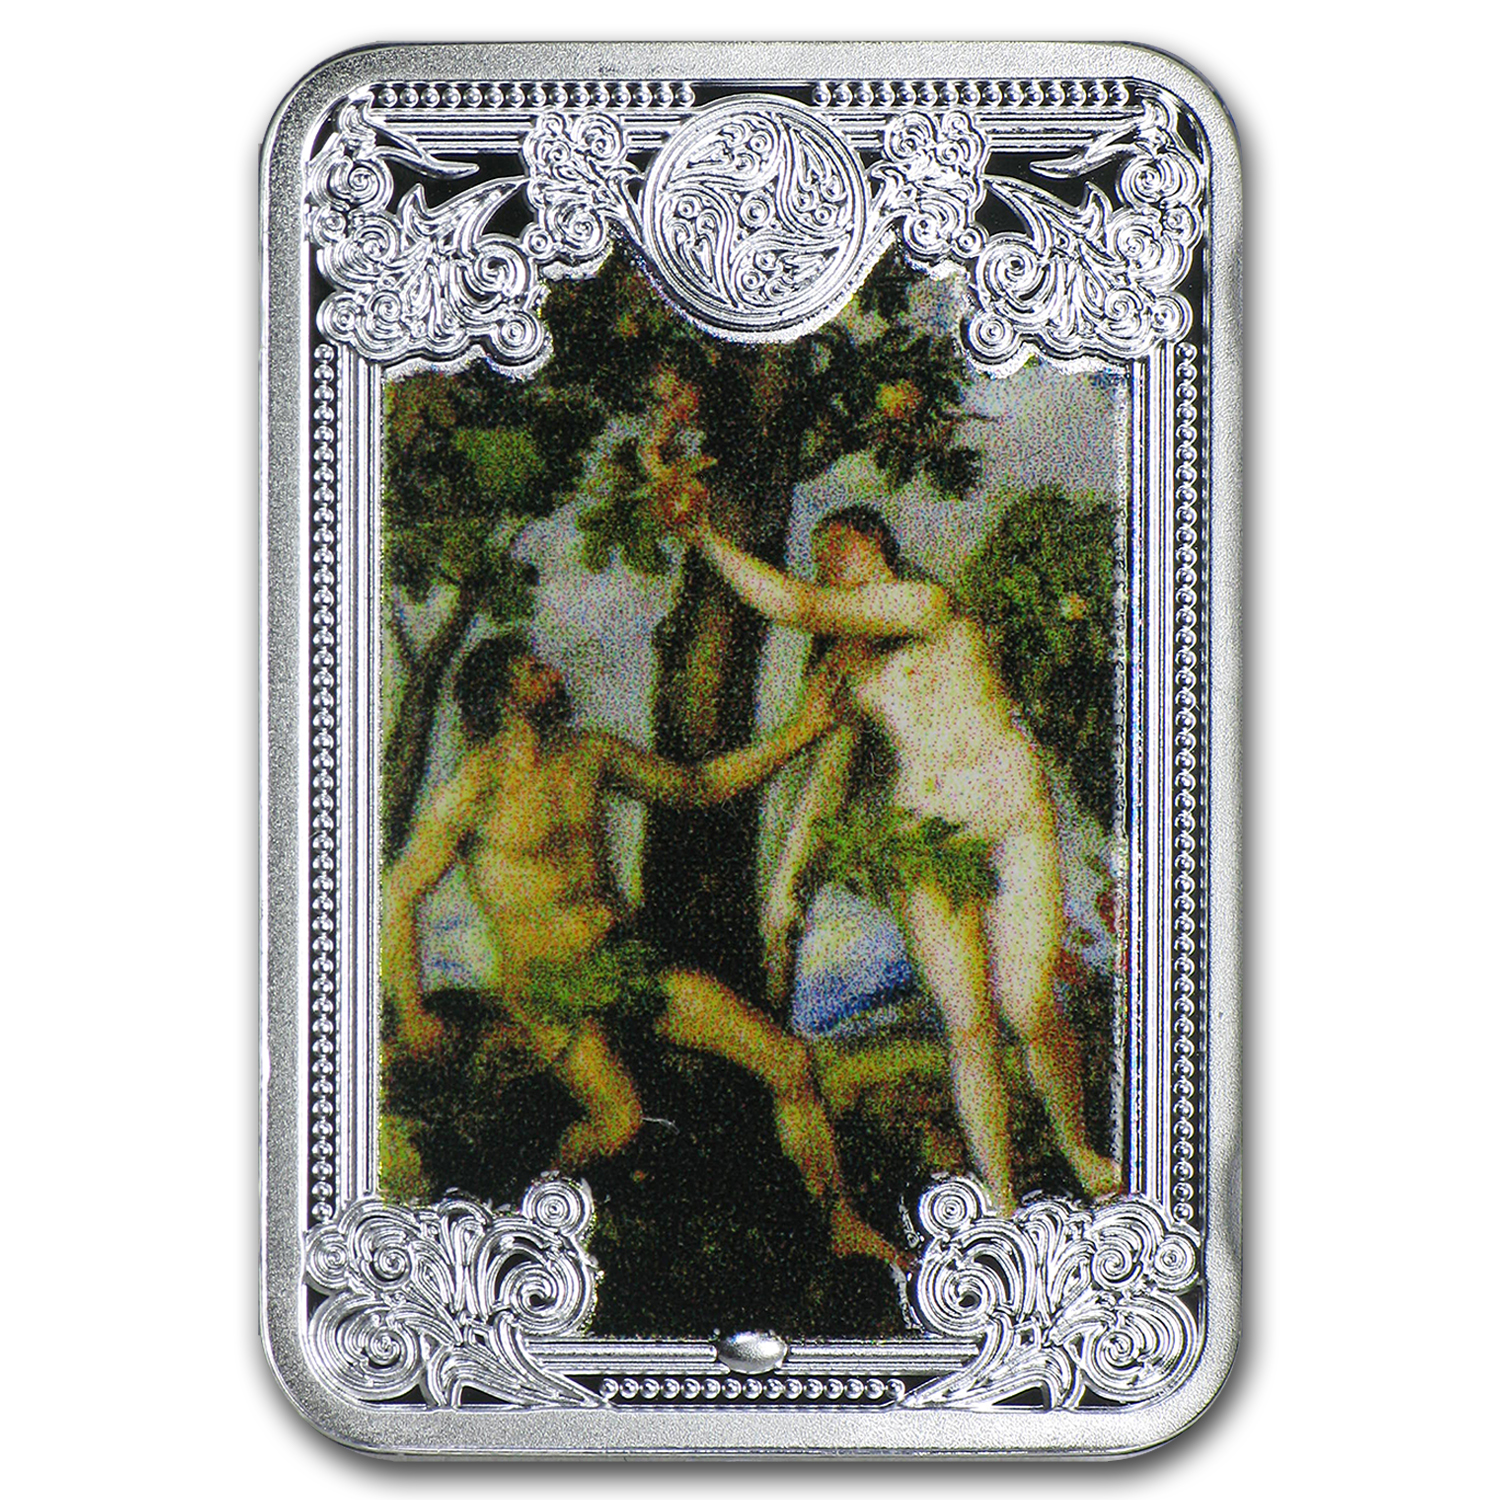 2015 Niue Silver Bible Stories The Fall of Man Proof